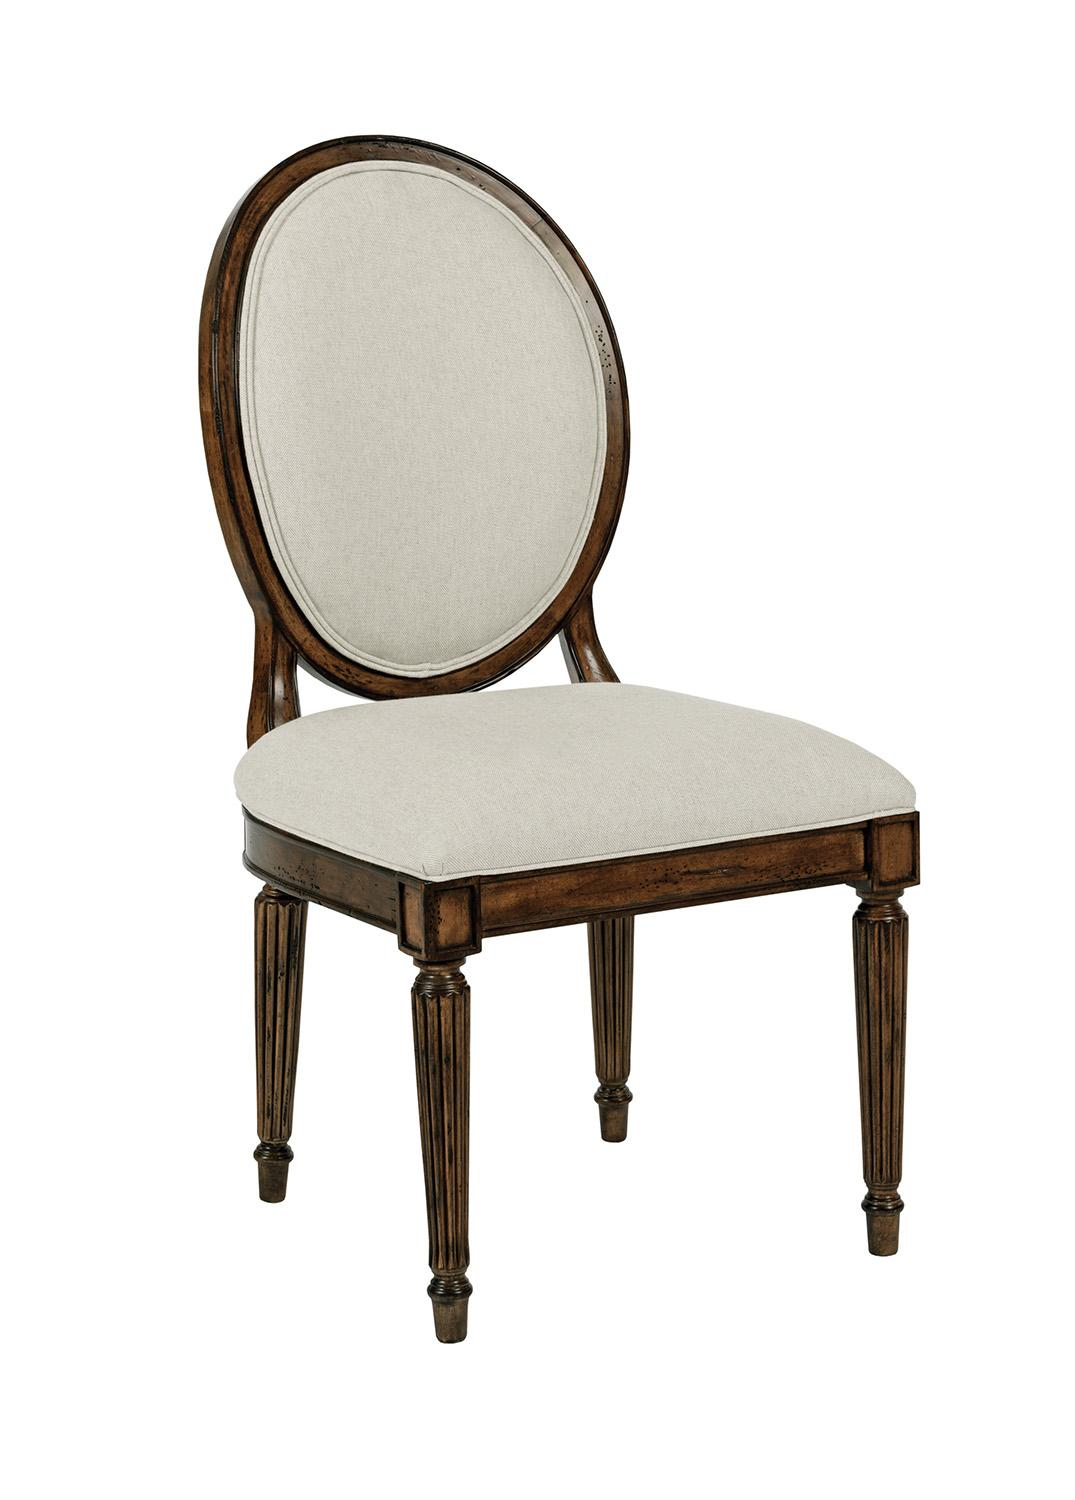 Morris Home Furnishings Middleburg Middleburg Side Chair - Item Number: 90-2496RZ